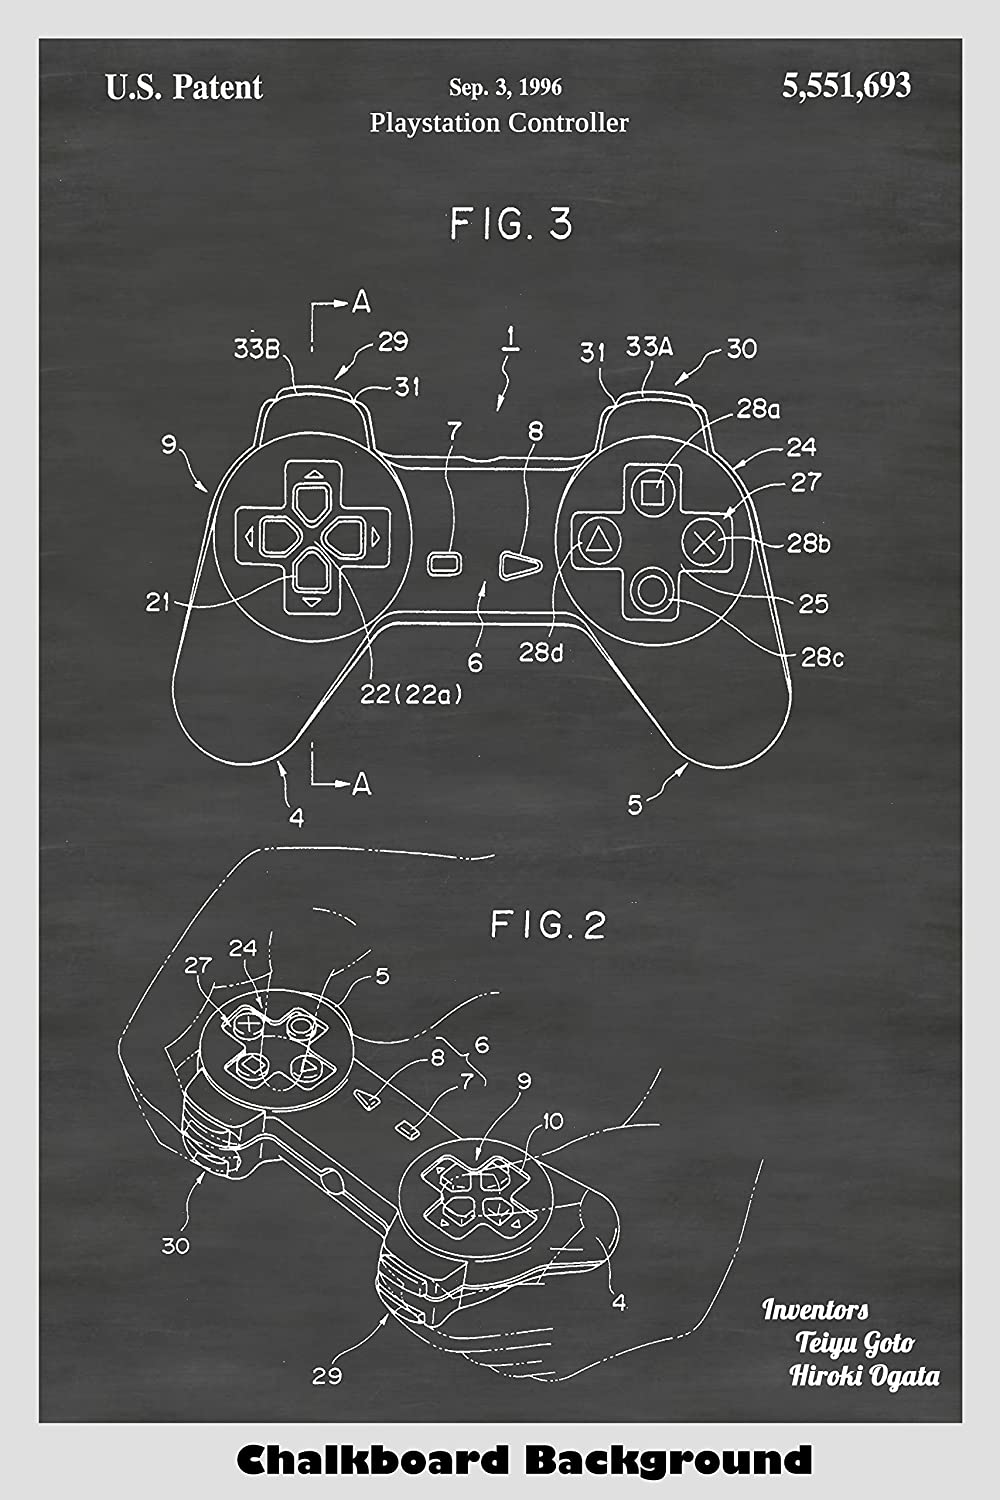 Sony Playstation Controller Patent Print Art Poster: Choose From Multiple Size and Background Color Options